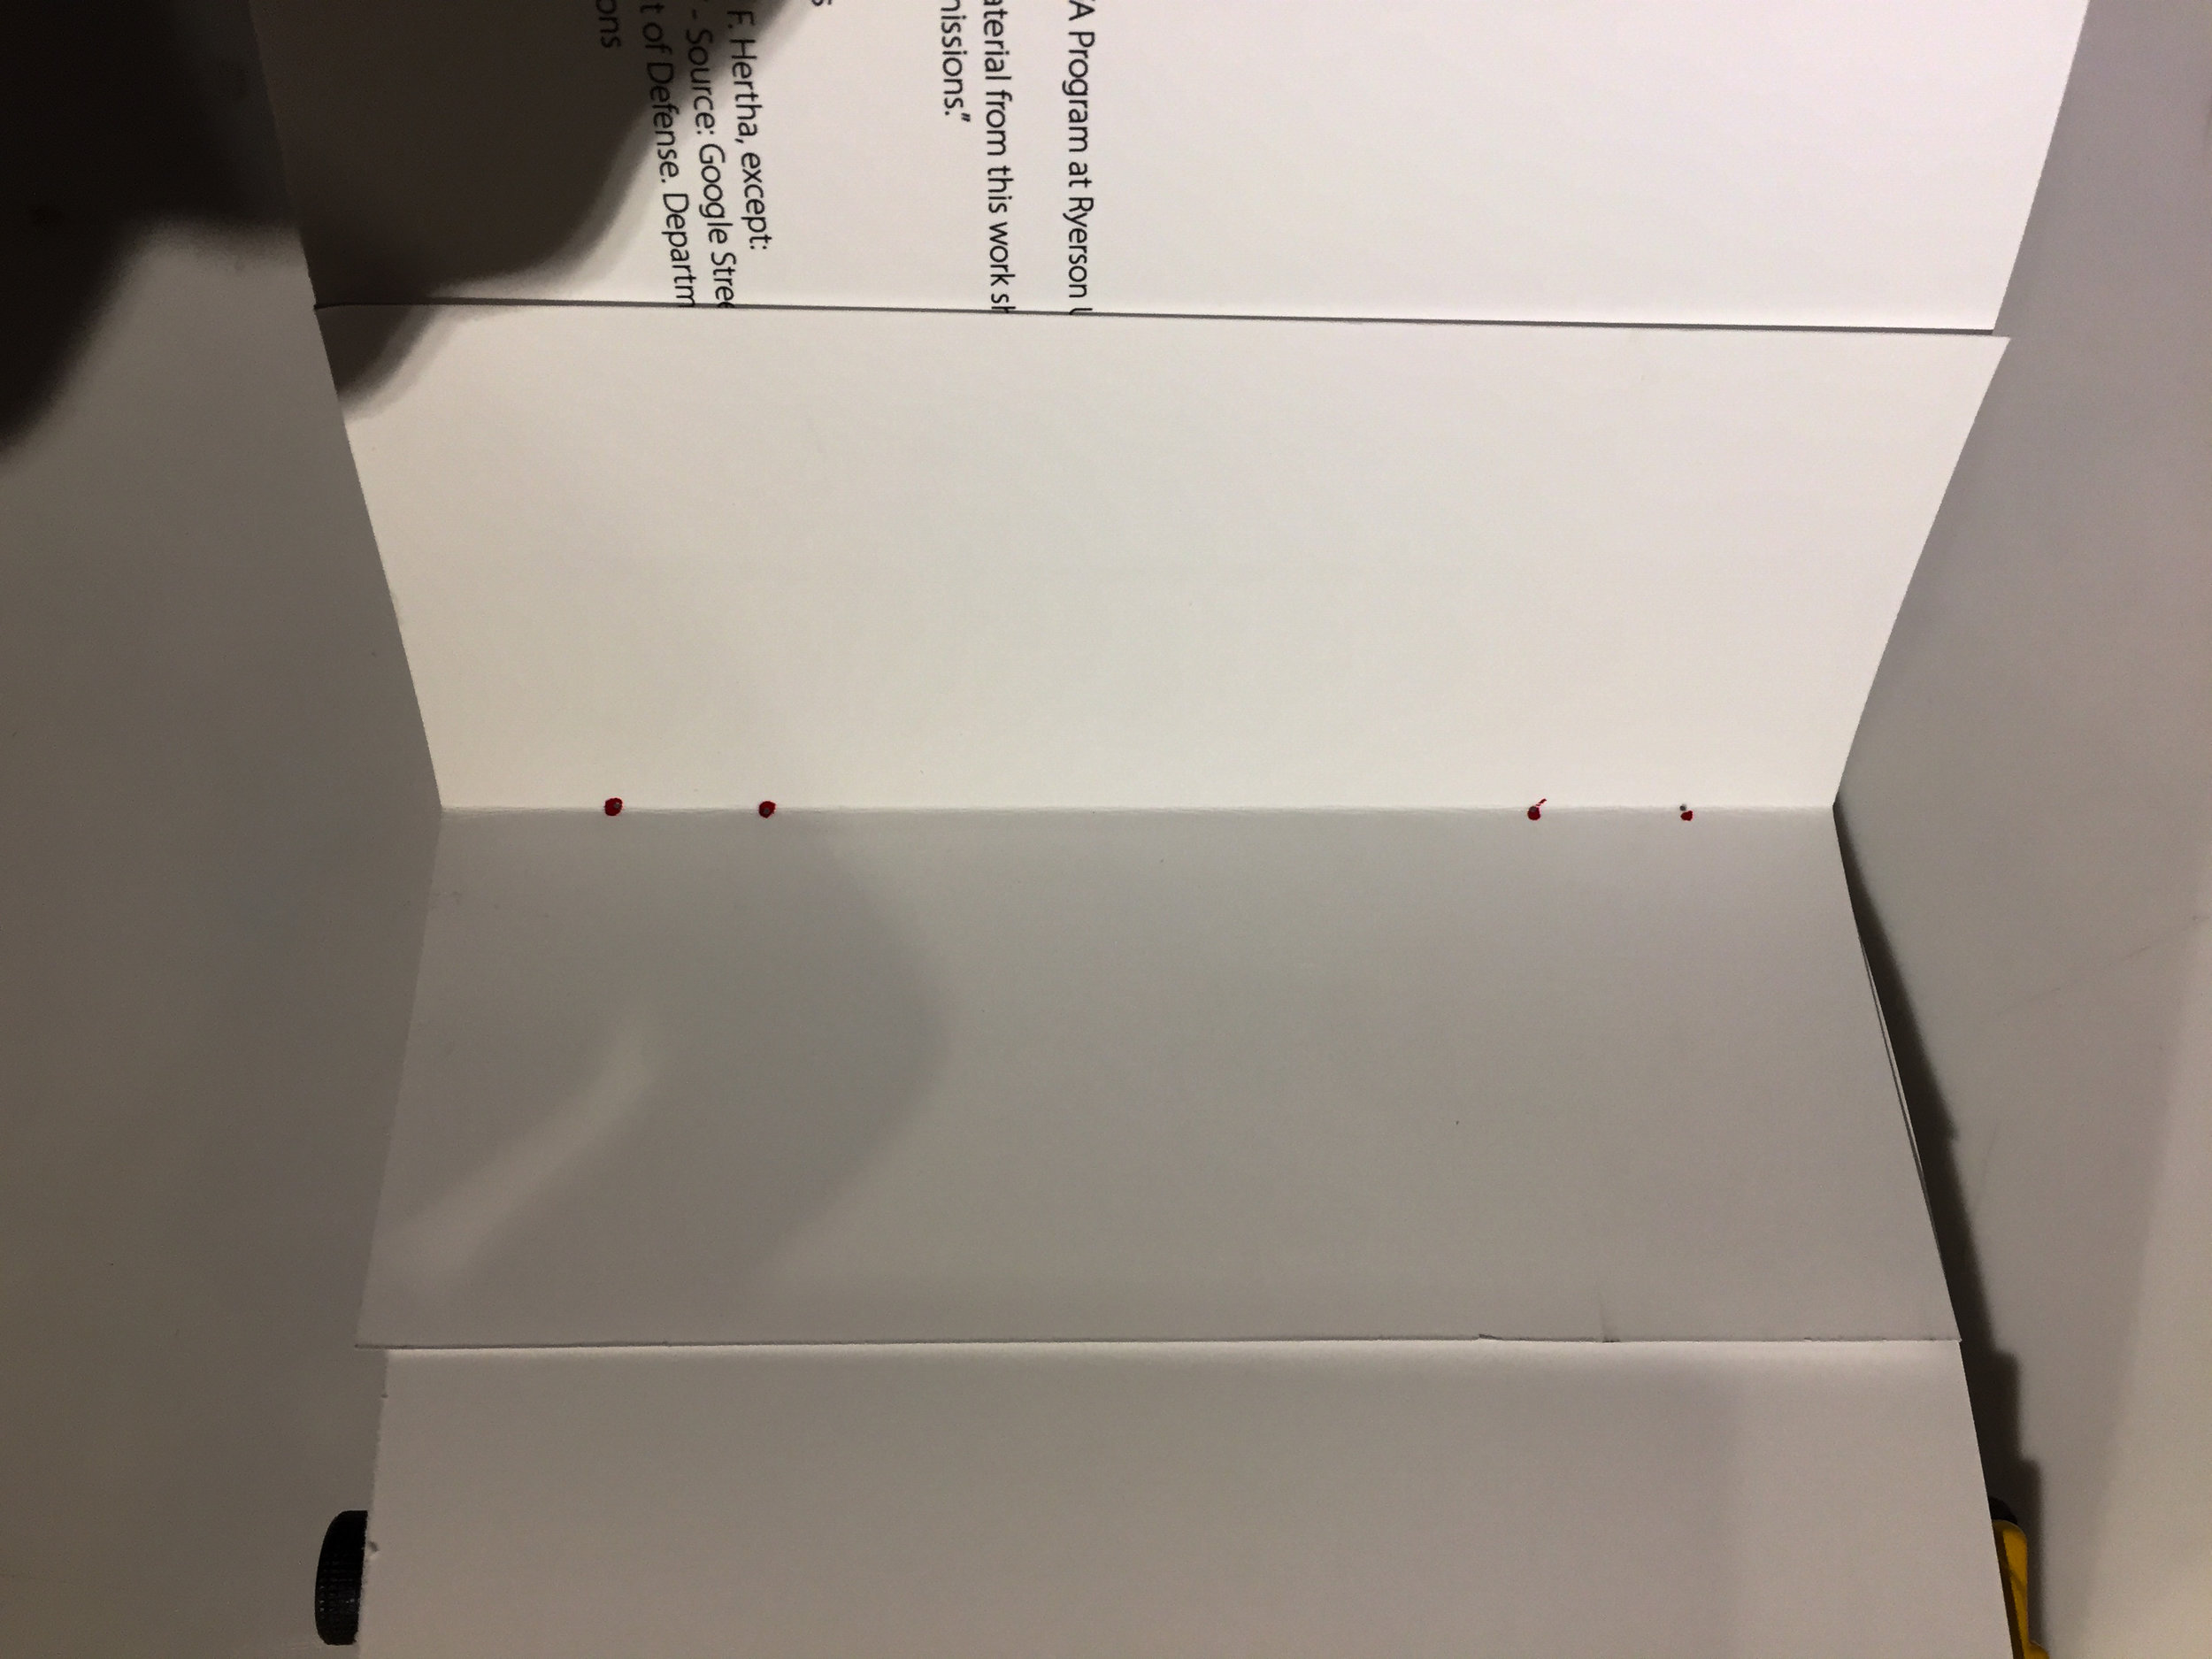 Pre-punching holes for Sewing (binding)